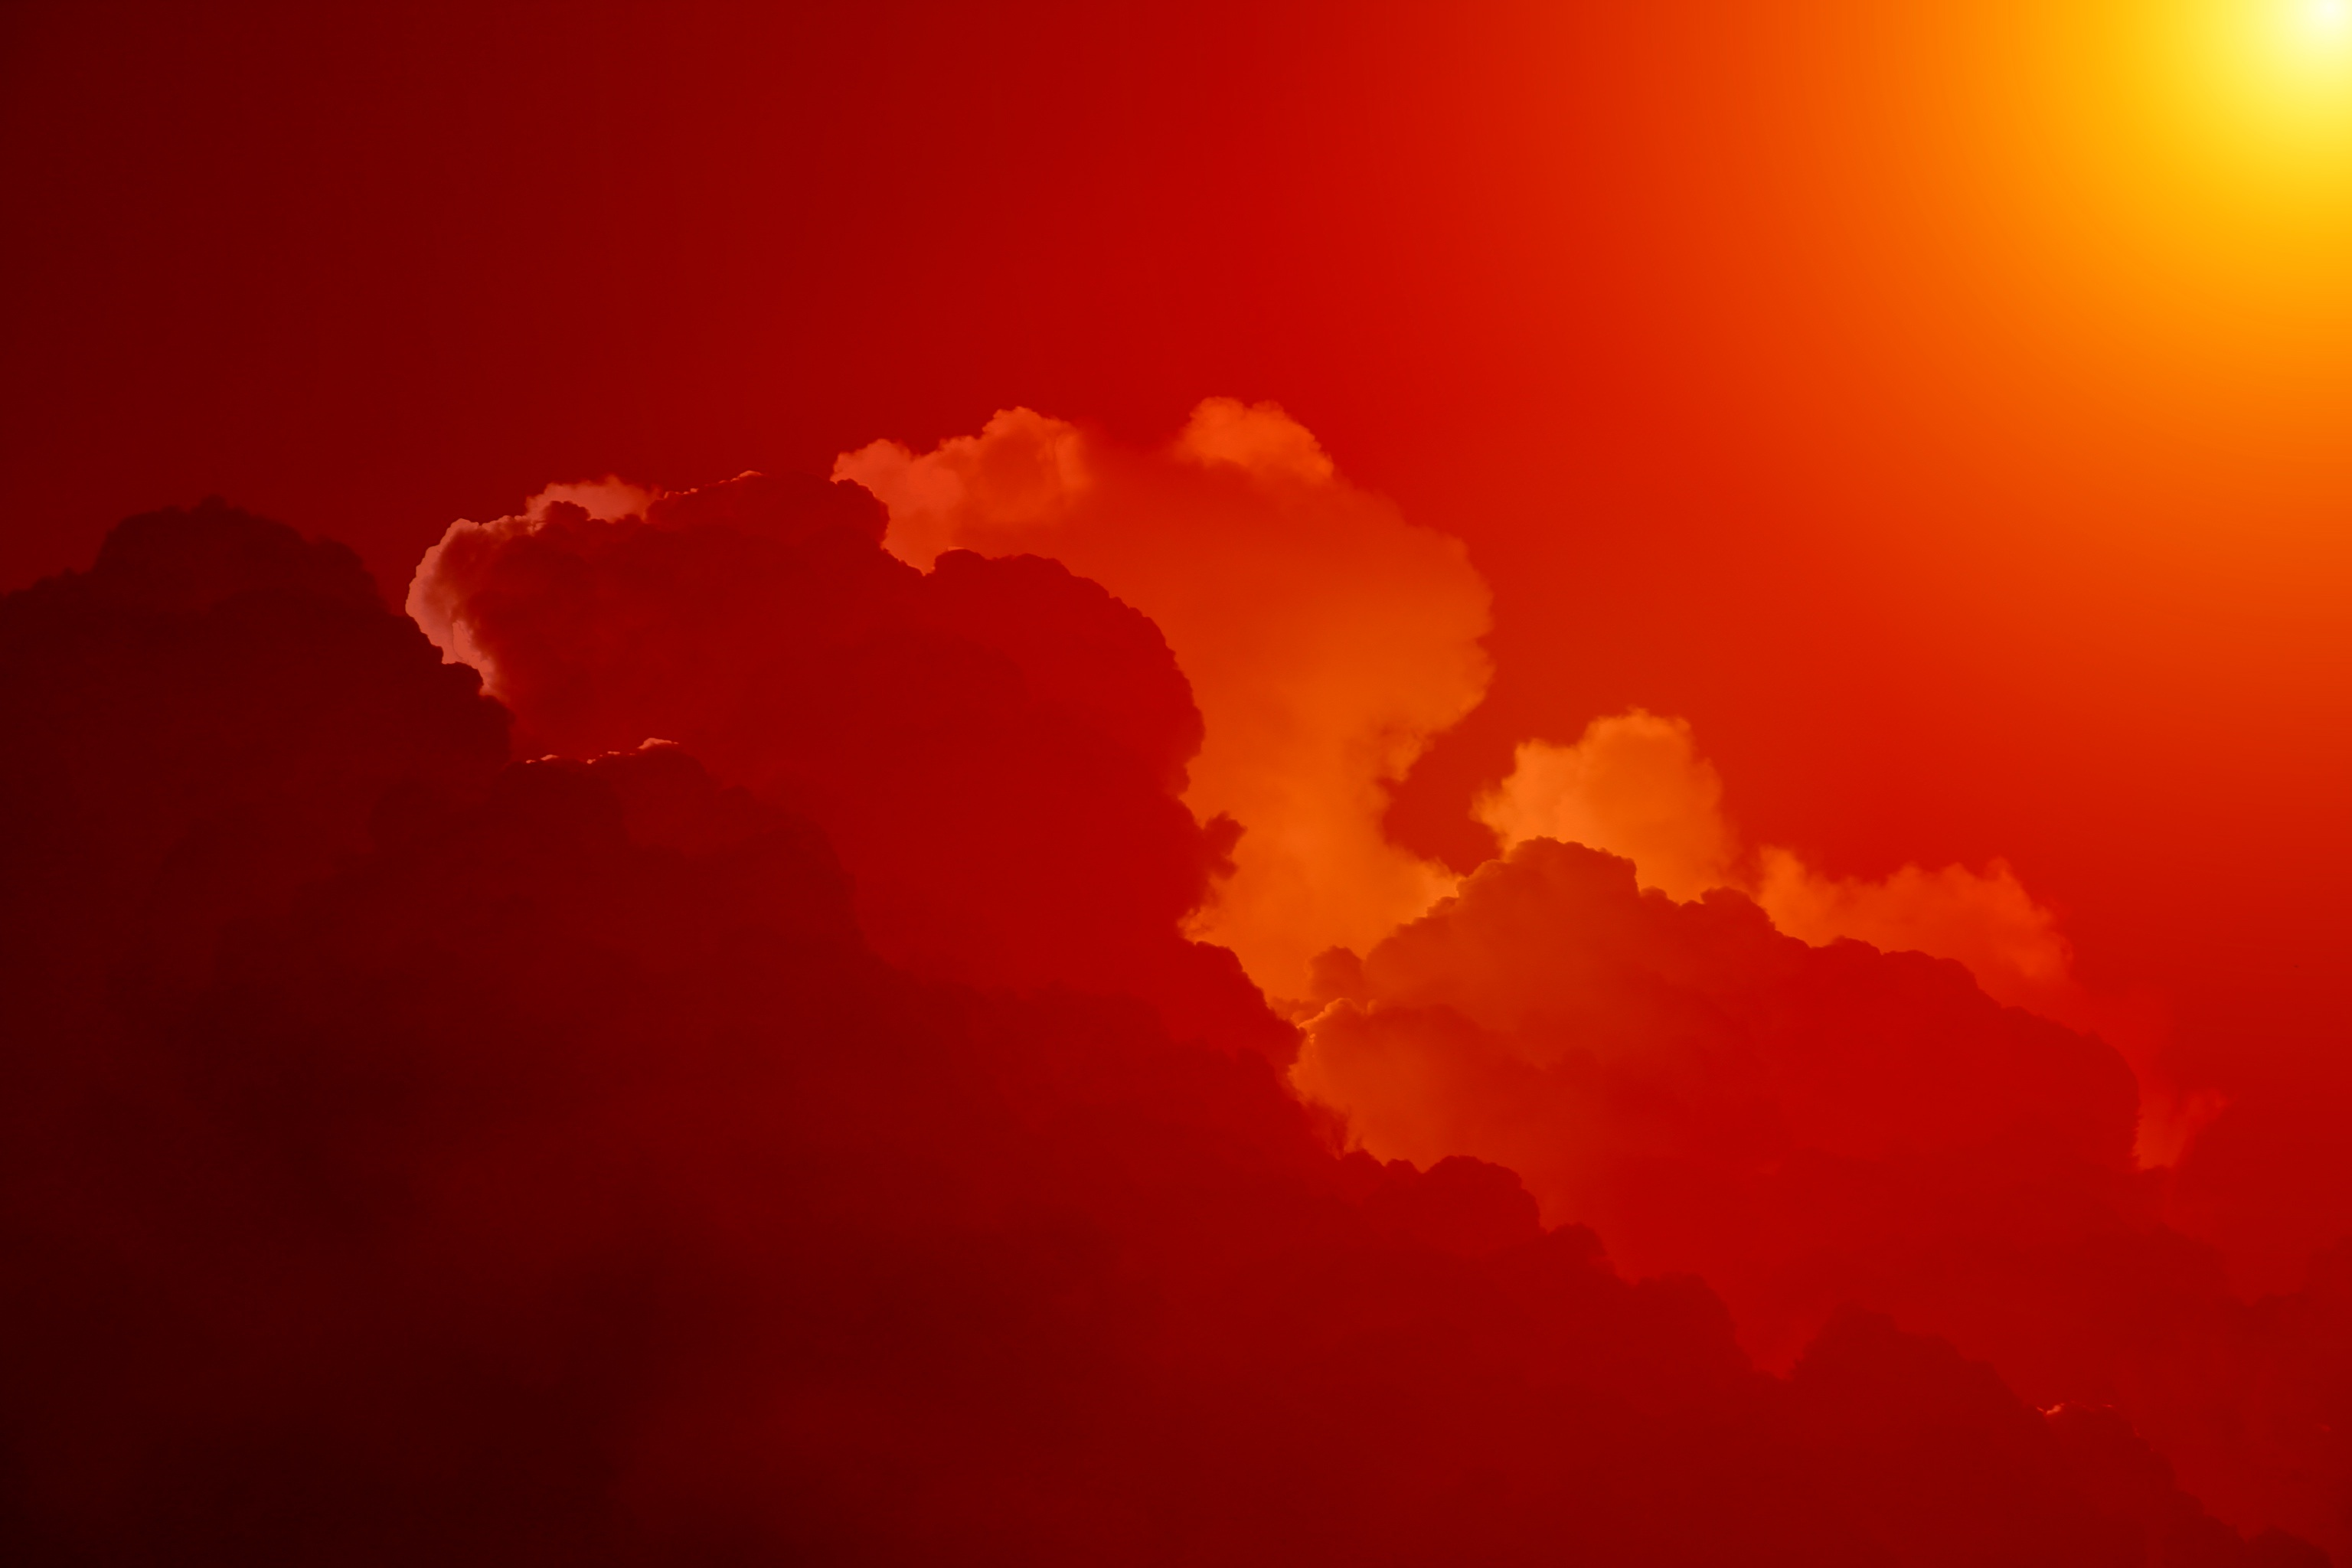 Red Sky Hd Nature 4k Wallpapers Images Backgrounds